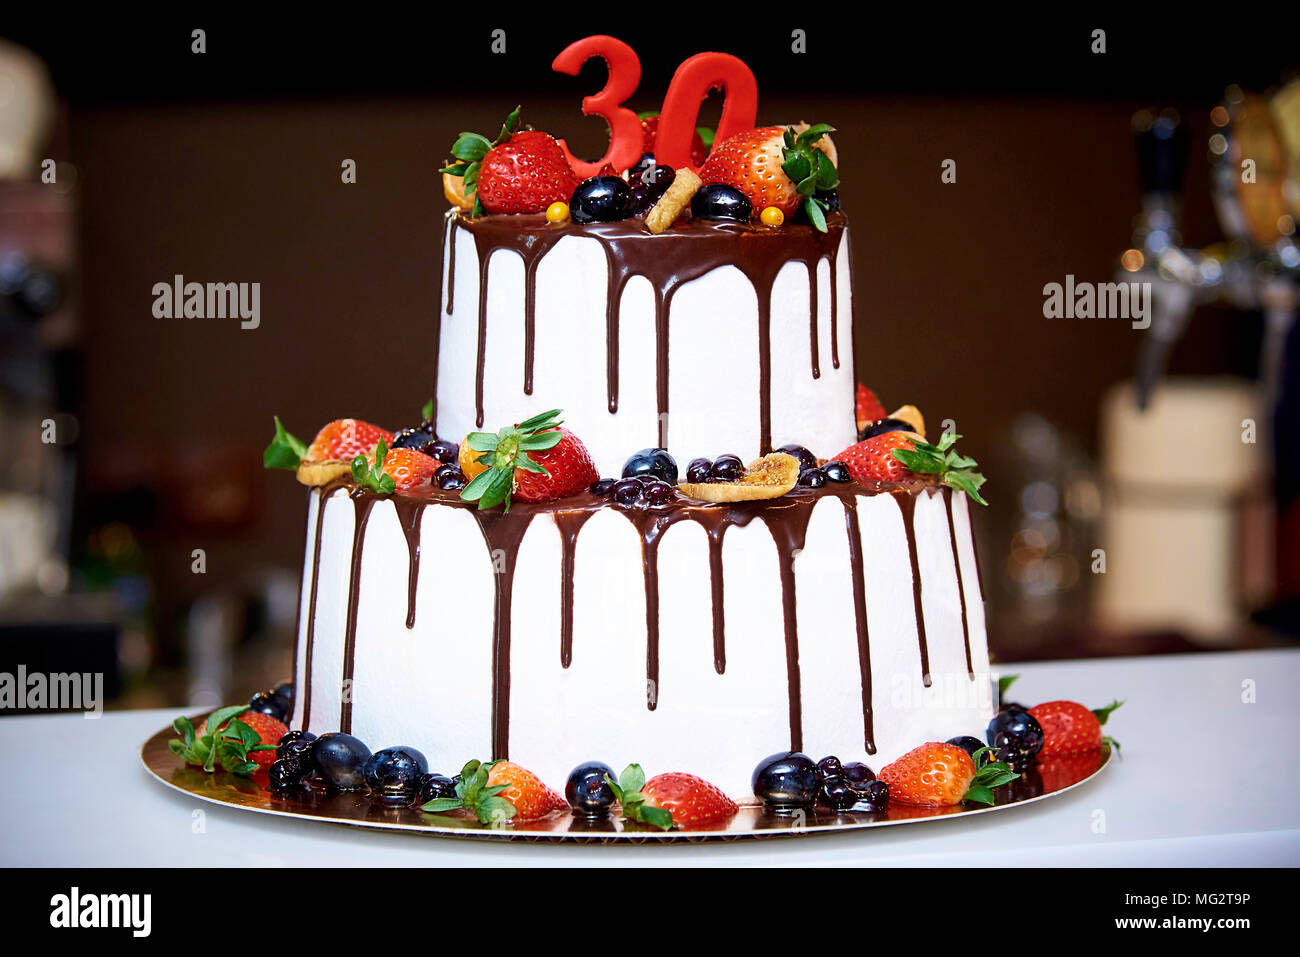 Two-tiered white cake with fresh fruits and chocolate decorated with a figure of thirty close-ups - Stock Image